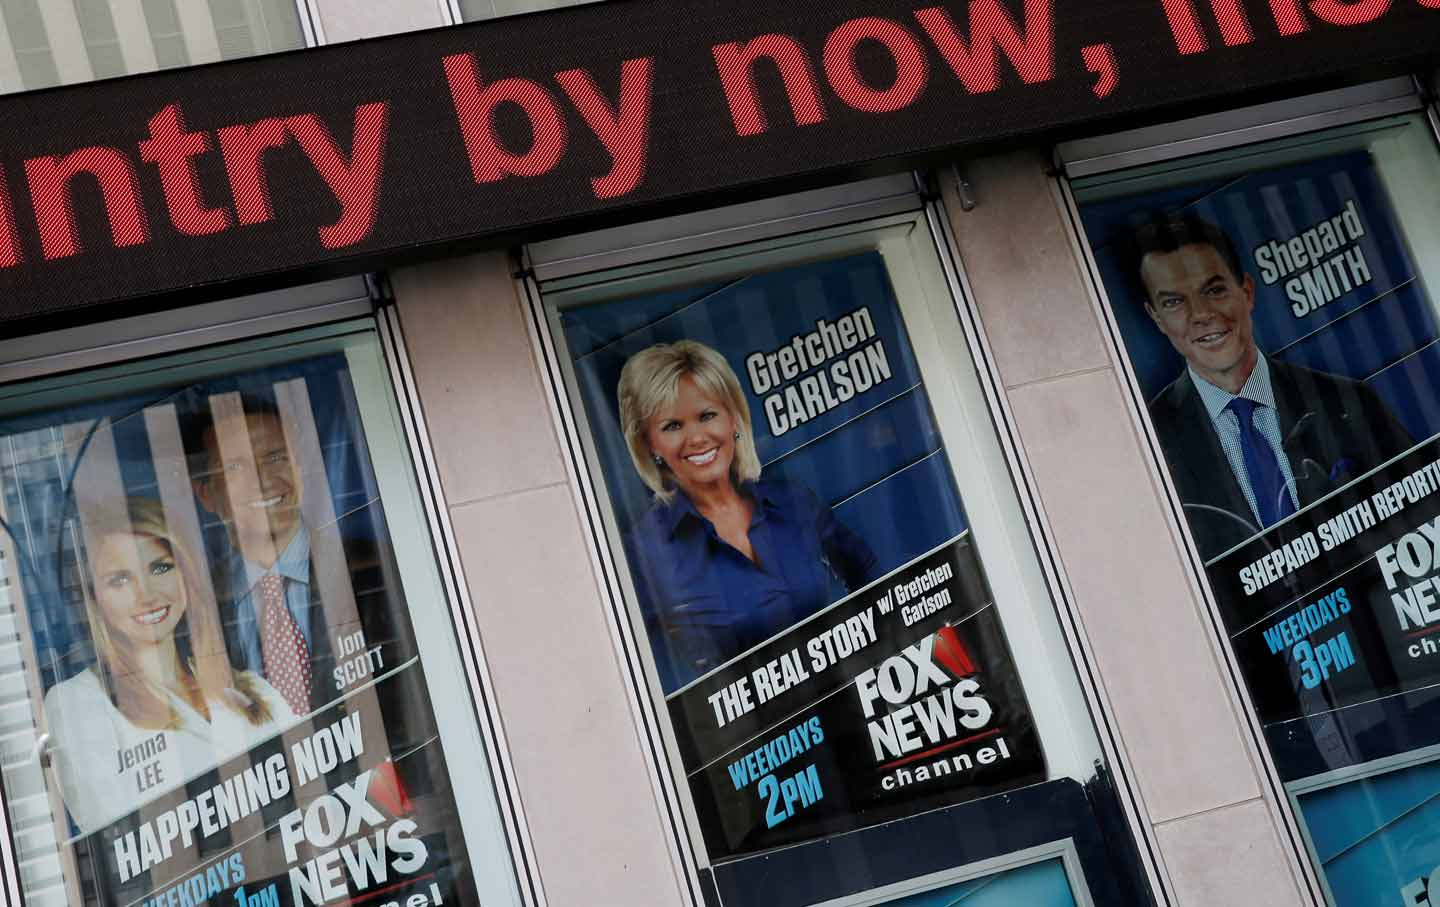 Gretchen Carlson at Fox News